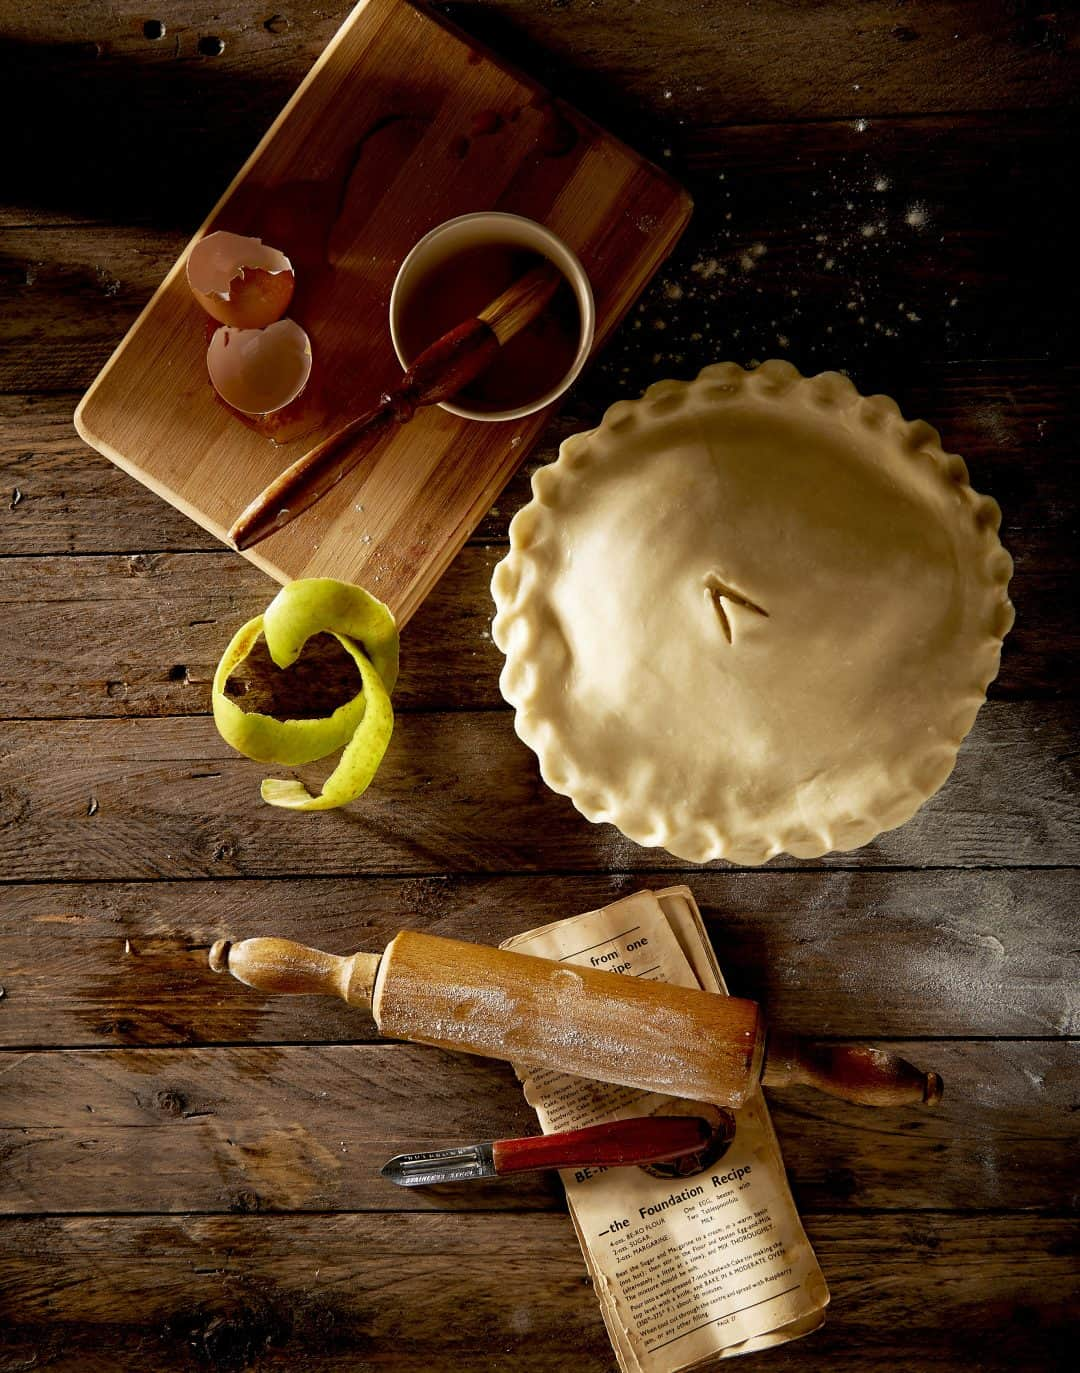 apple pie ready to be baked on a wooden counter with rolling pin, and baking utensils